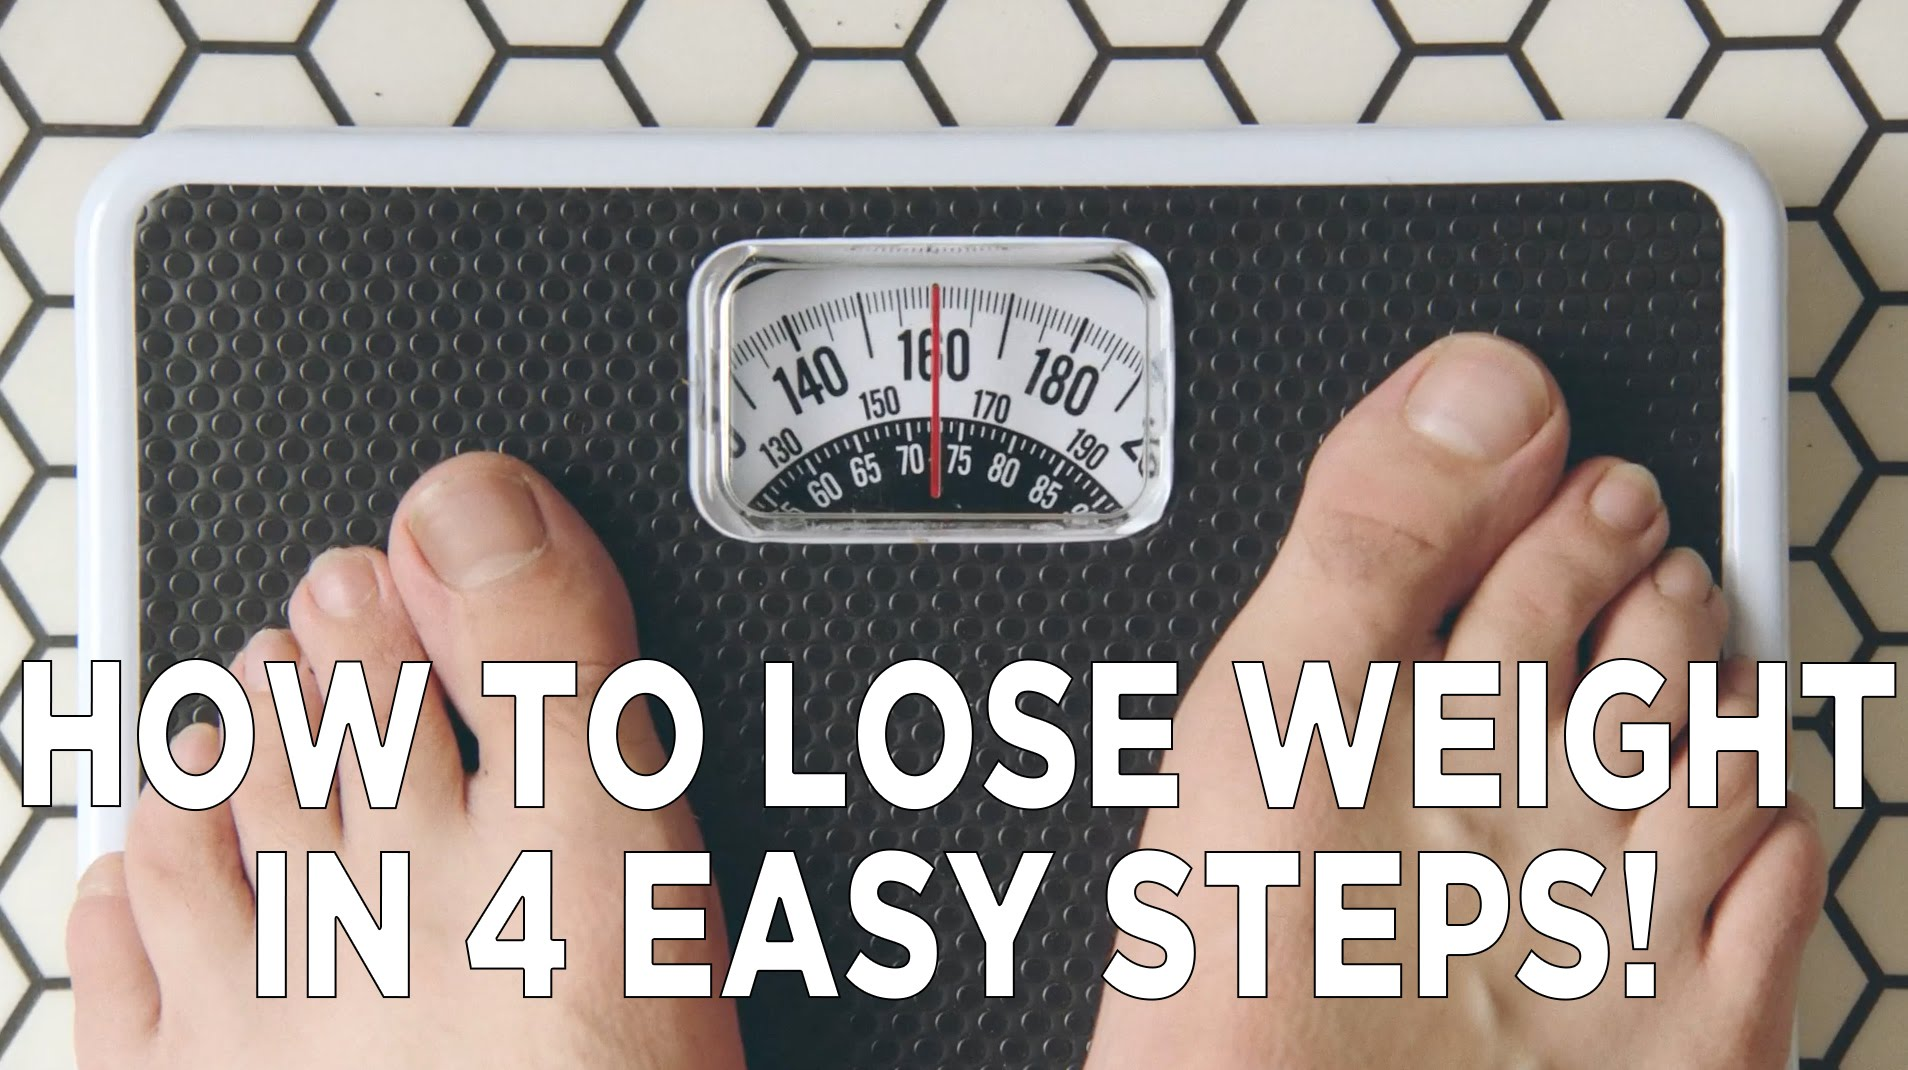 How to Lose Weight How to Lose Fat With Easy Steps